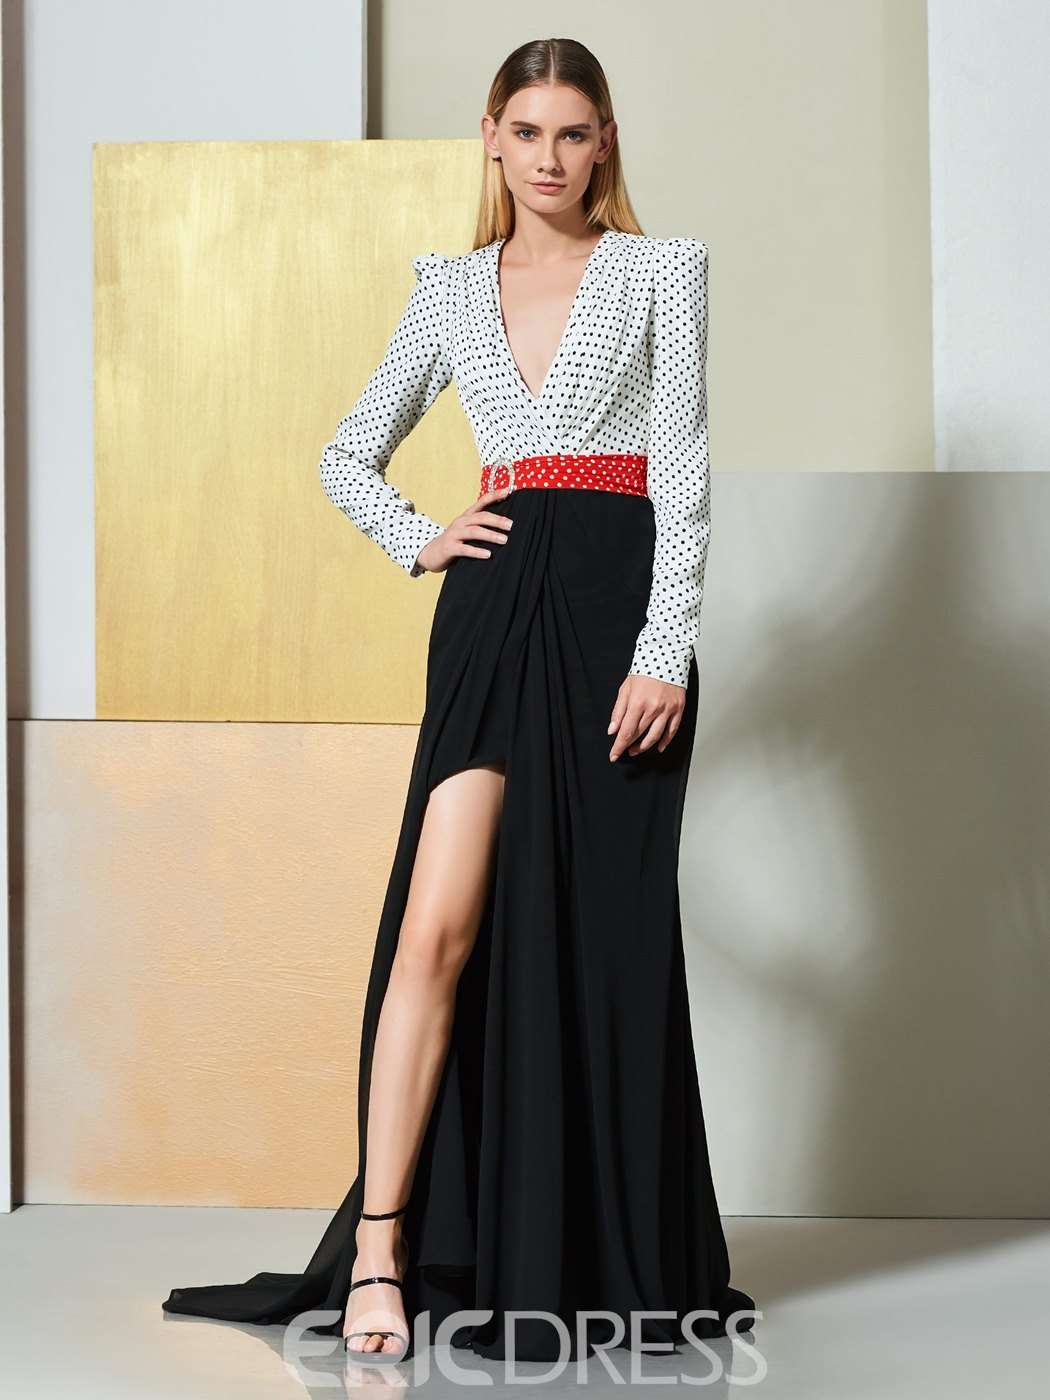 Ericdress A Line Long Sleeve Black And White V Neck Evening Dress